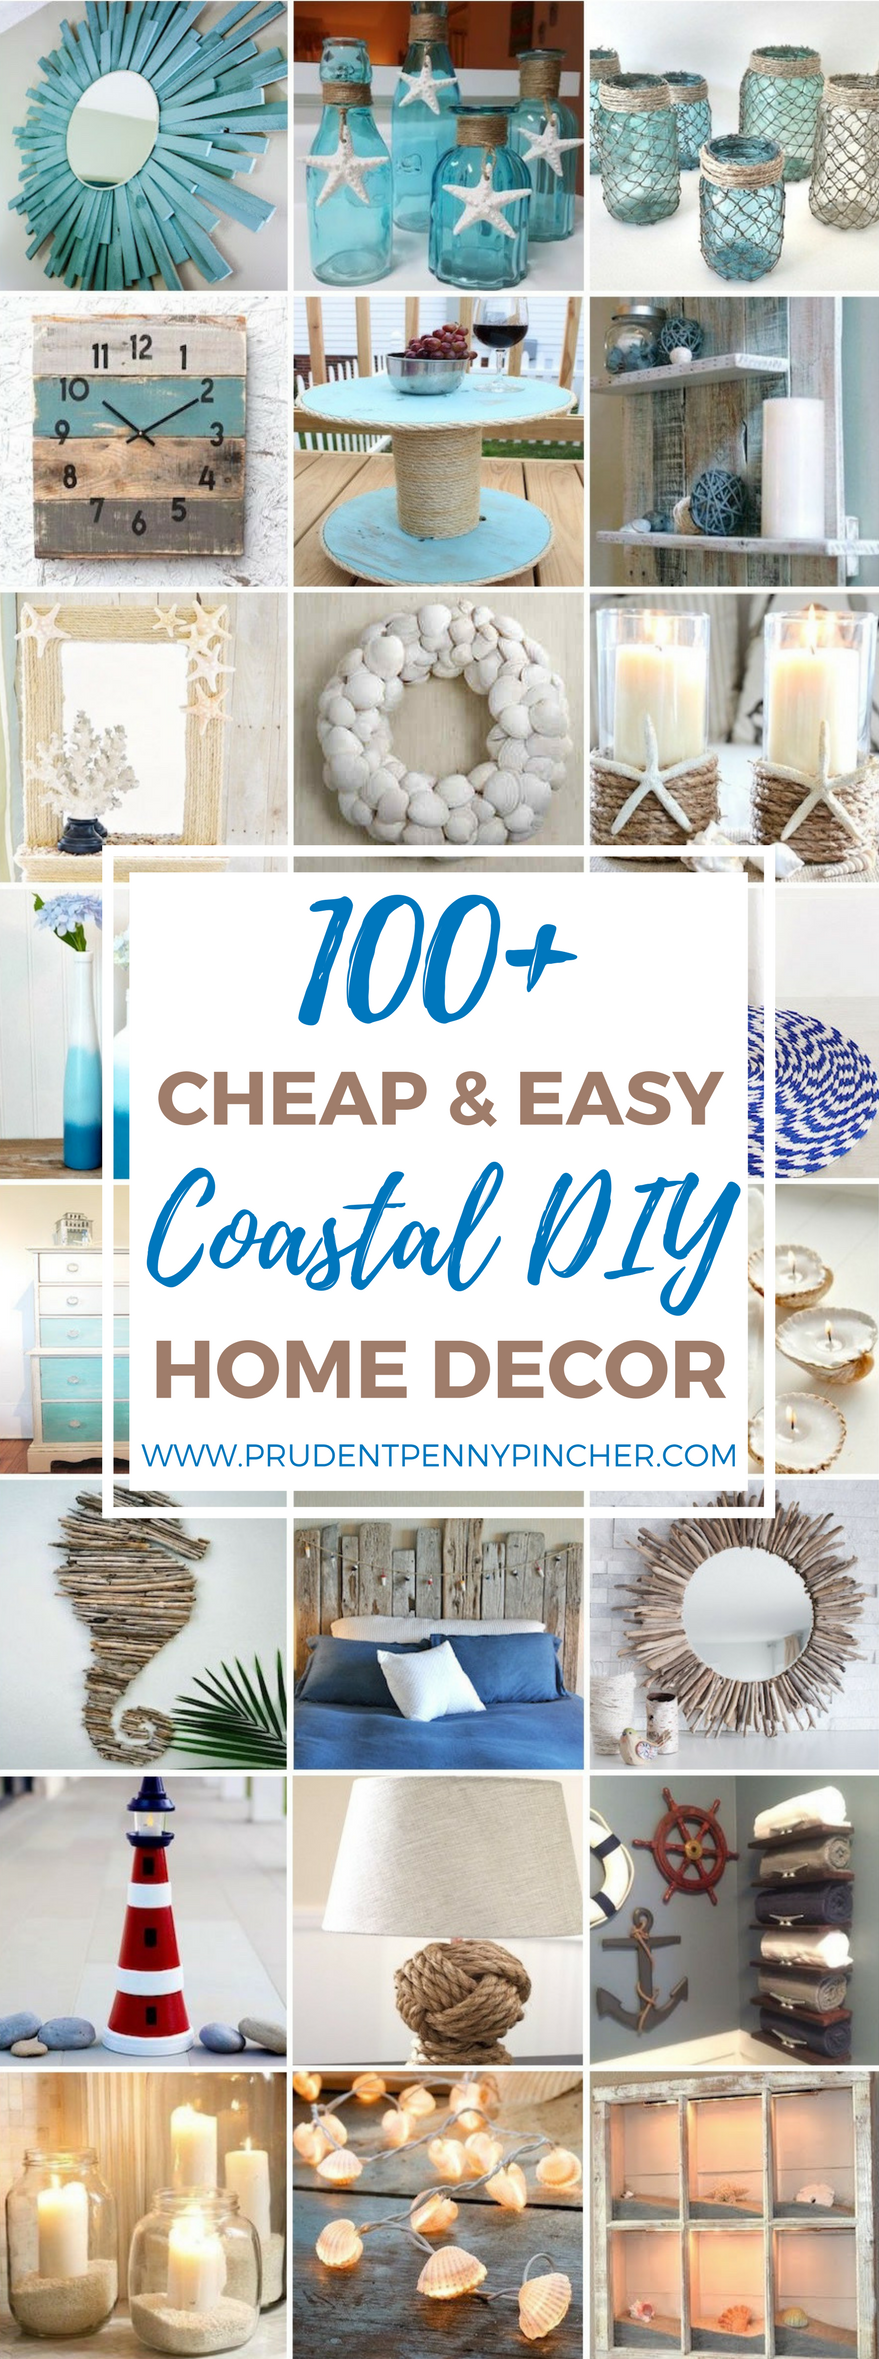 Diy home decor ideas from dollar tree stores for Inexpensive home decor